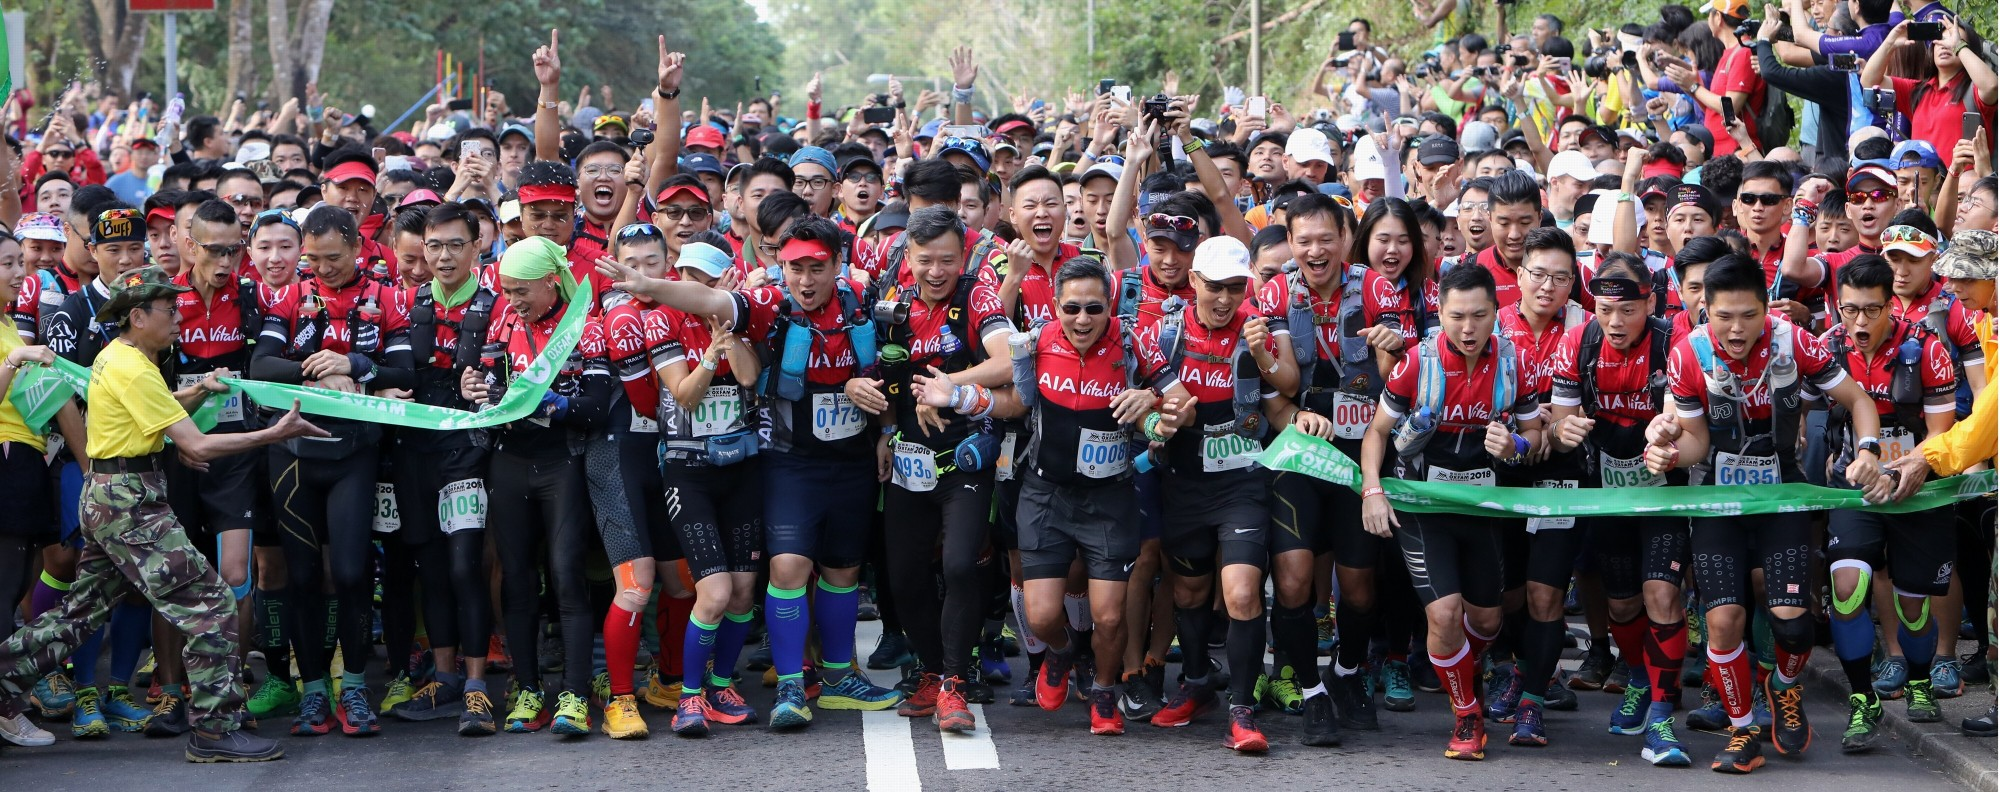 The start line of the 2018 Oxfam Trailwalker, one of more than 200 trail events each year. Photo: Dickson Lee